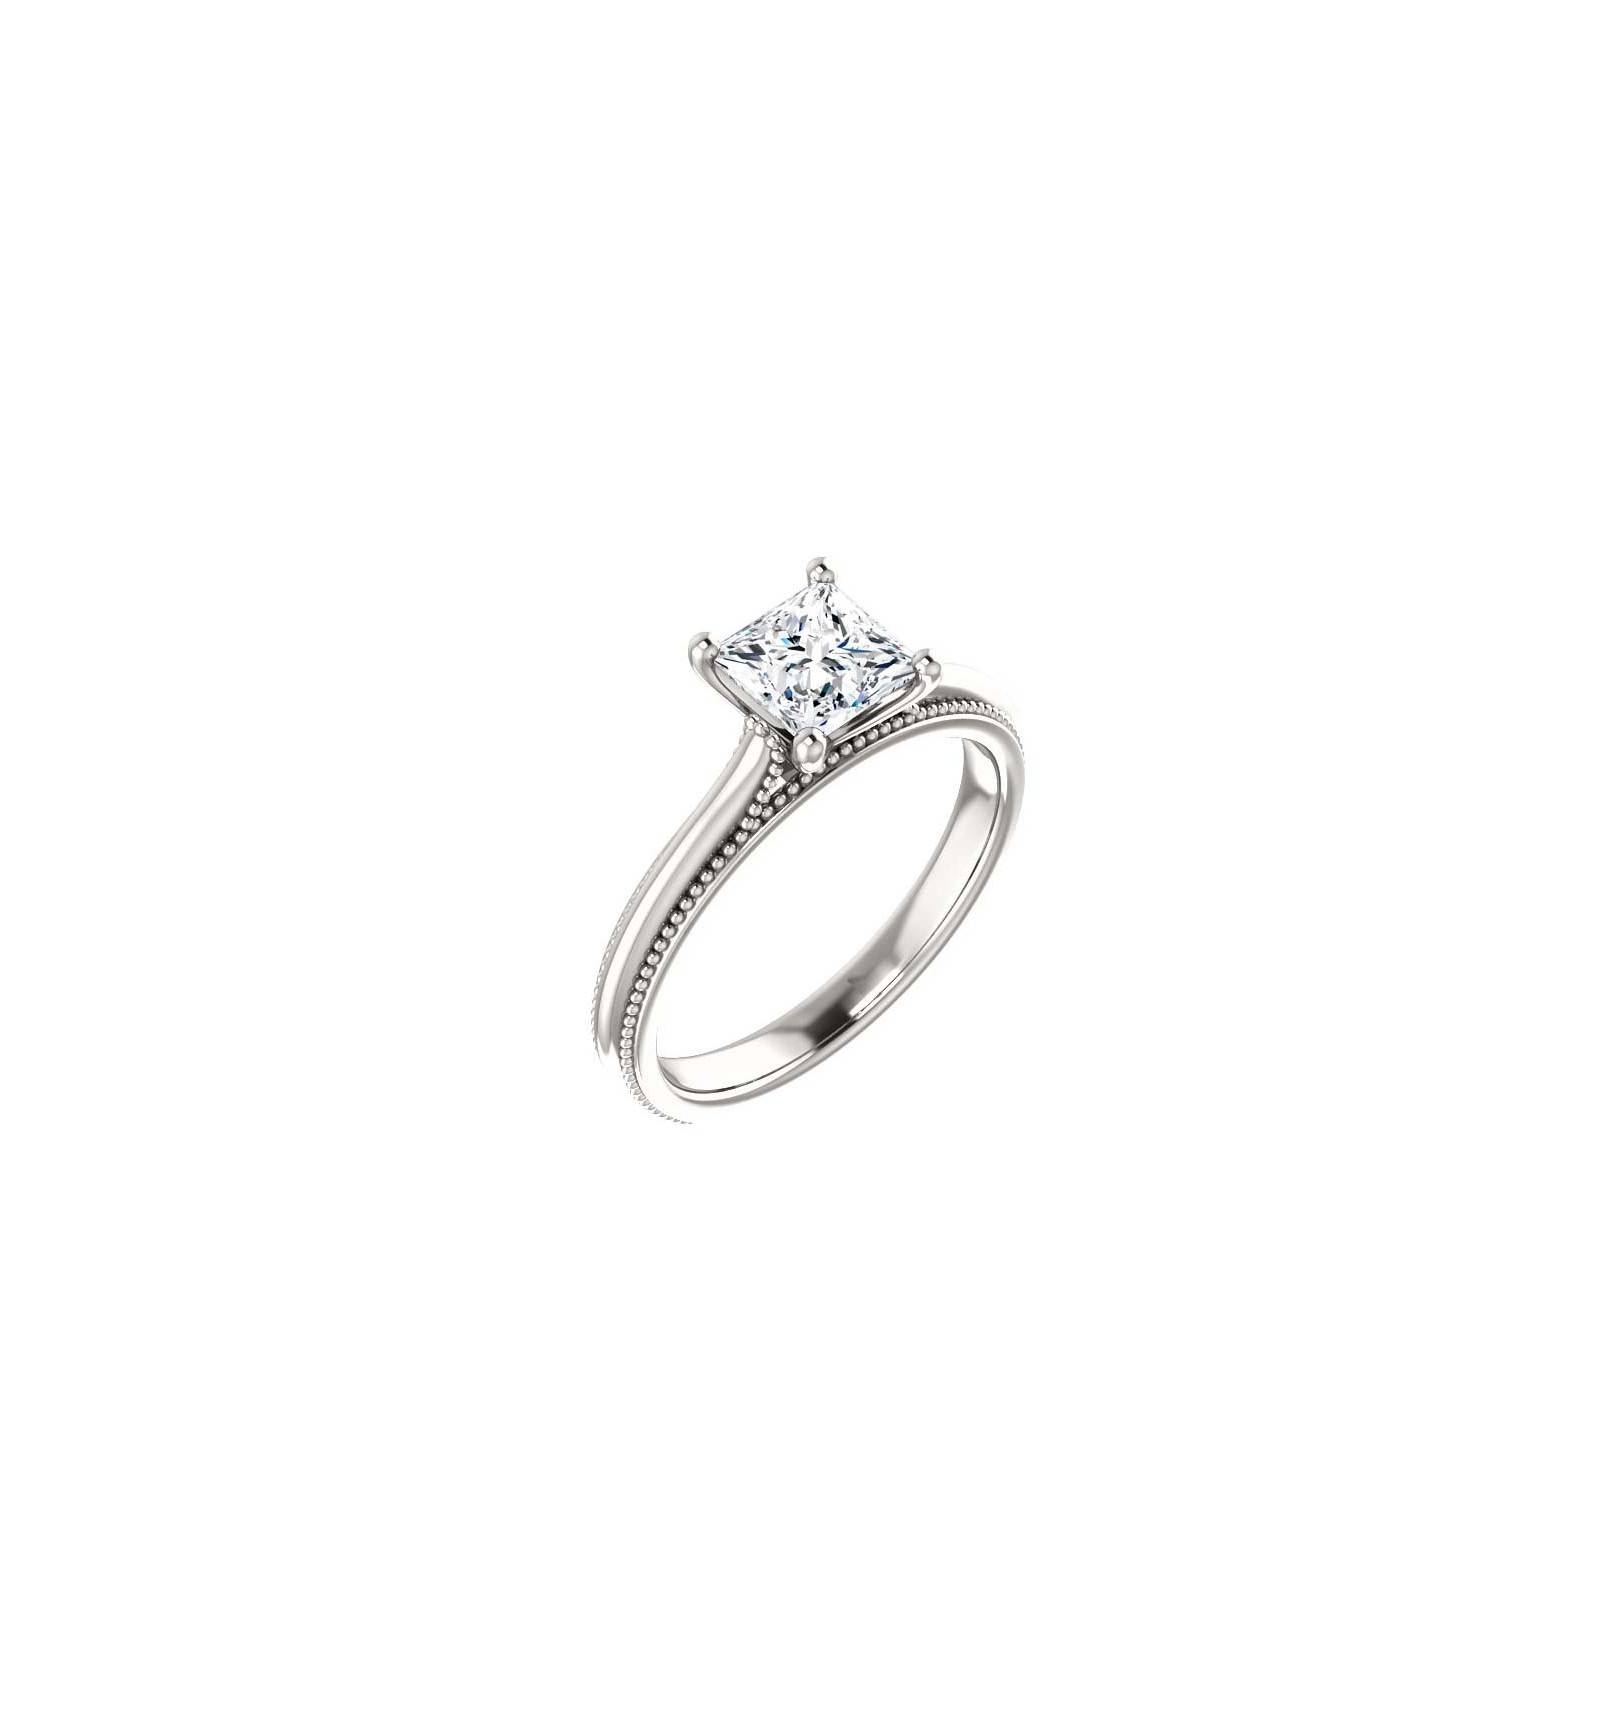 Ring Sterling Silver / Princess Cut Within Silver Princess Cut Diamond Engagement Rings (Gallery 14 of 15)